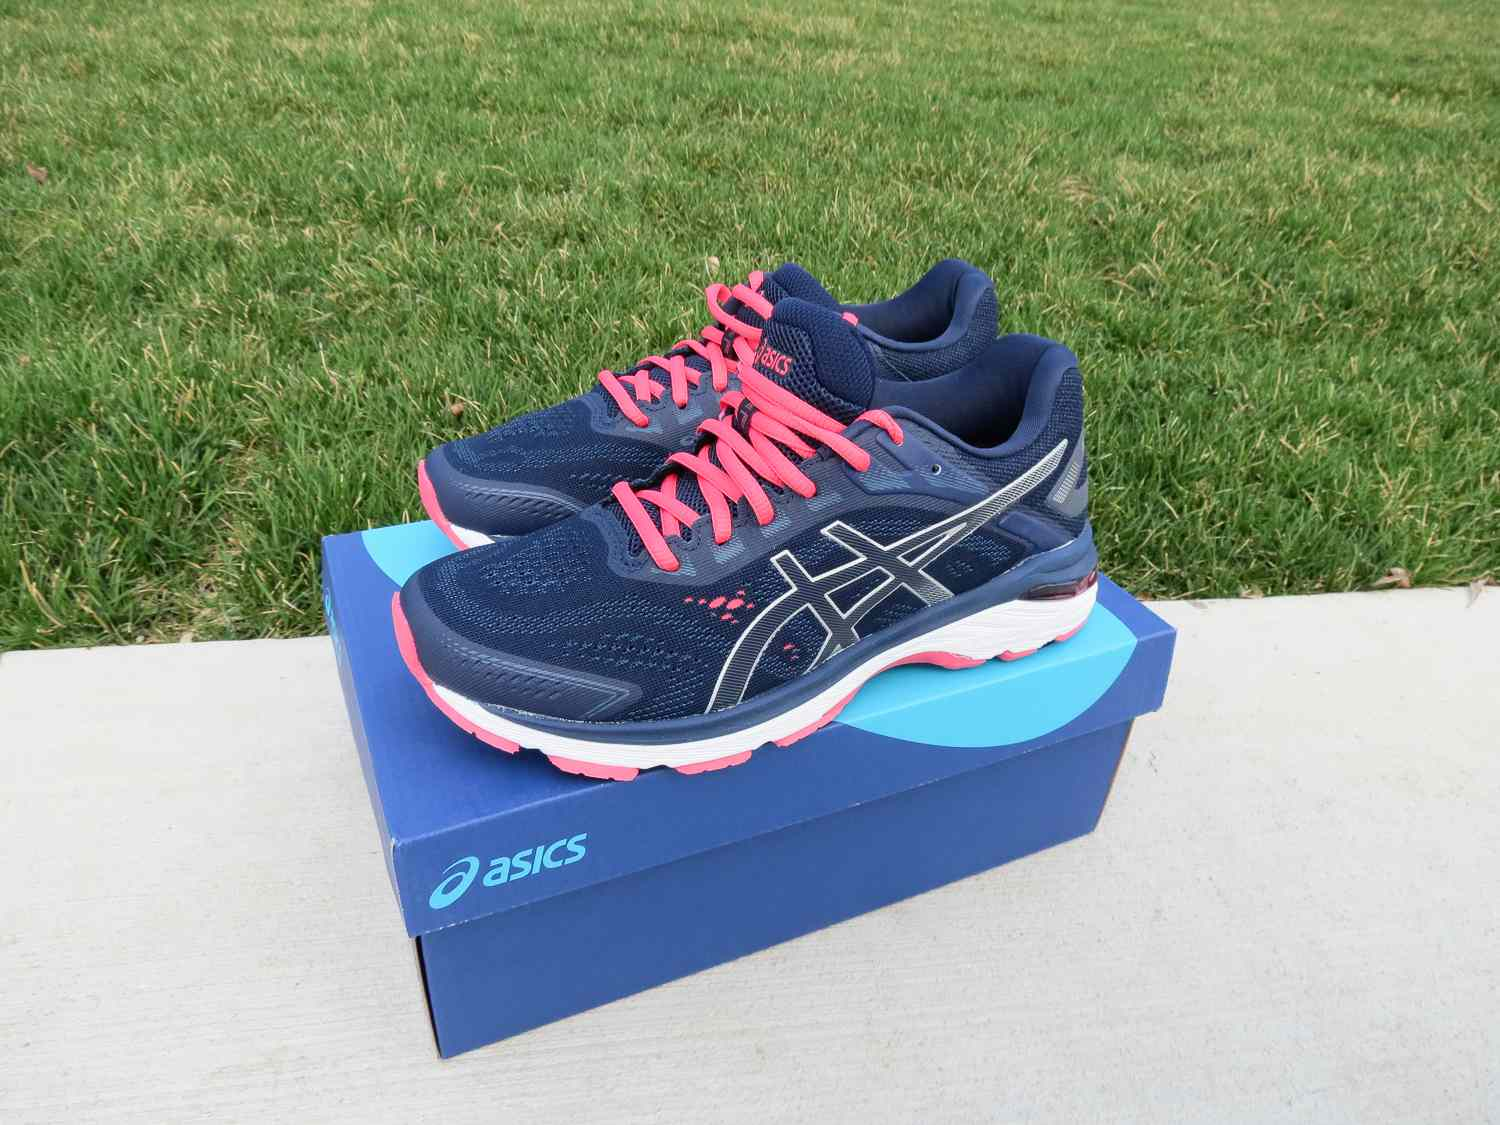 Venta ambulante bebida Arqueólogo  ASICS GT-2000 7 Review: A Sturdy, All-Around Favorite